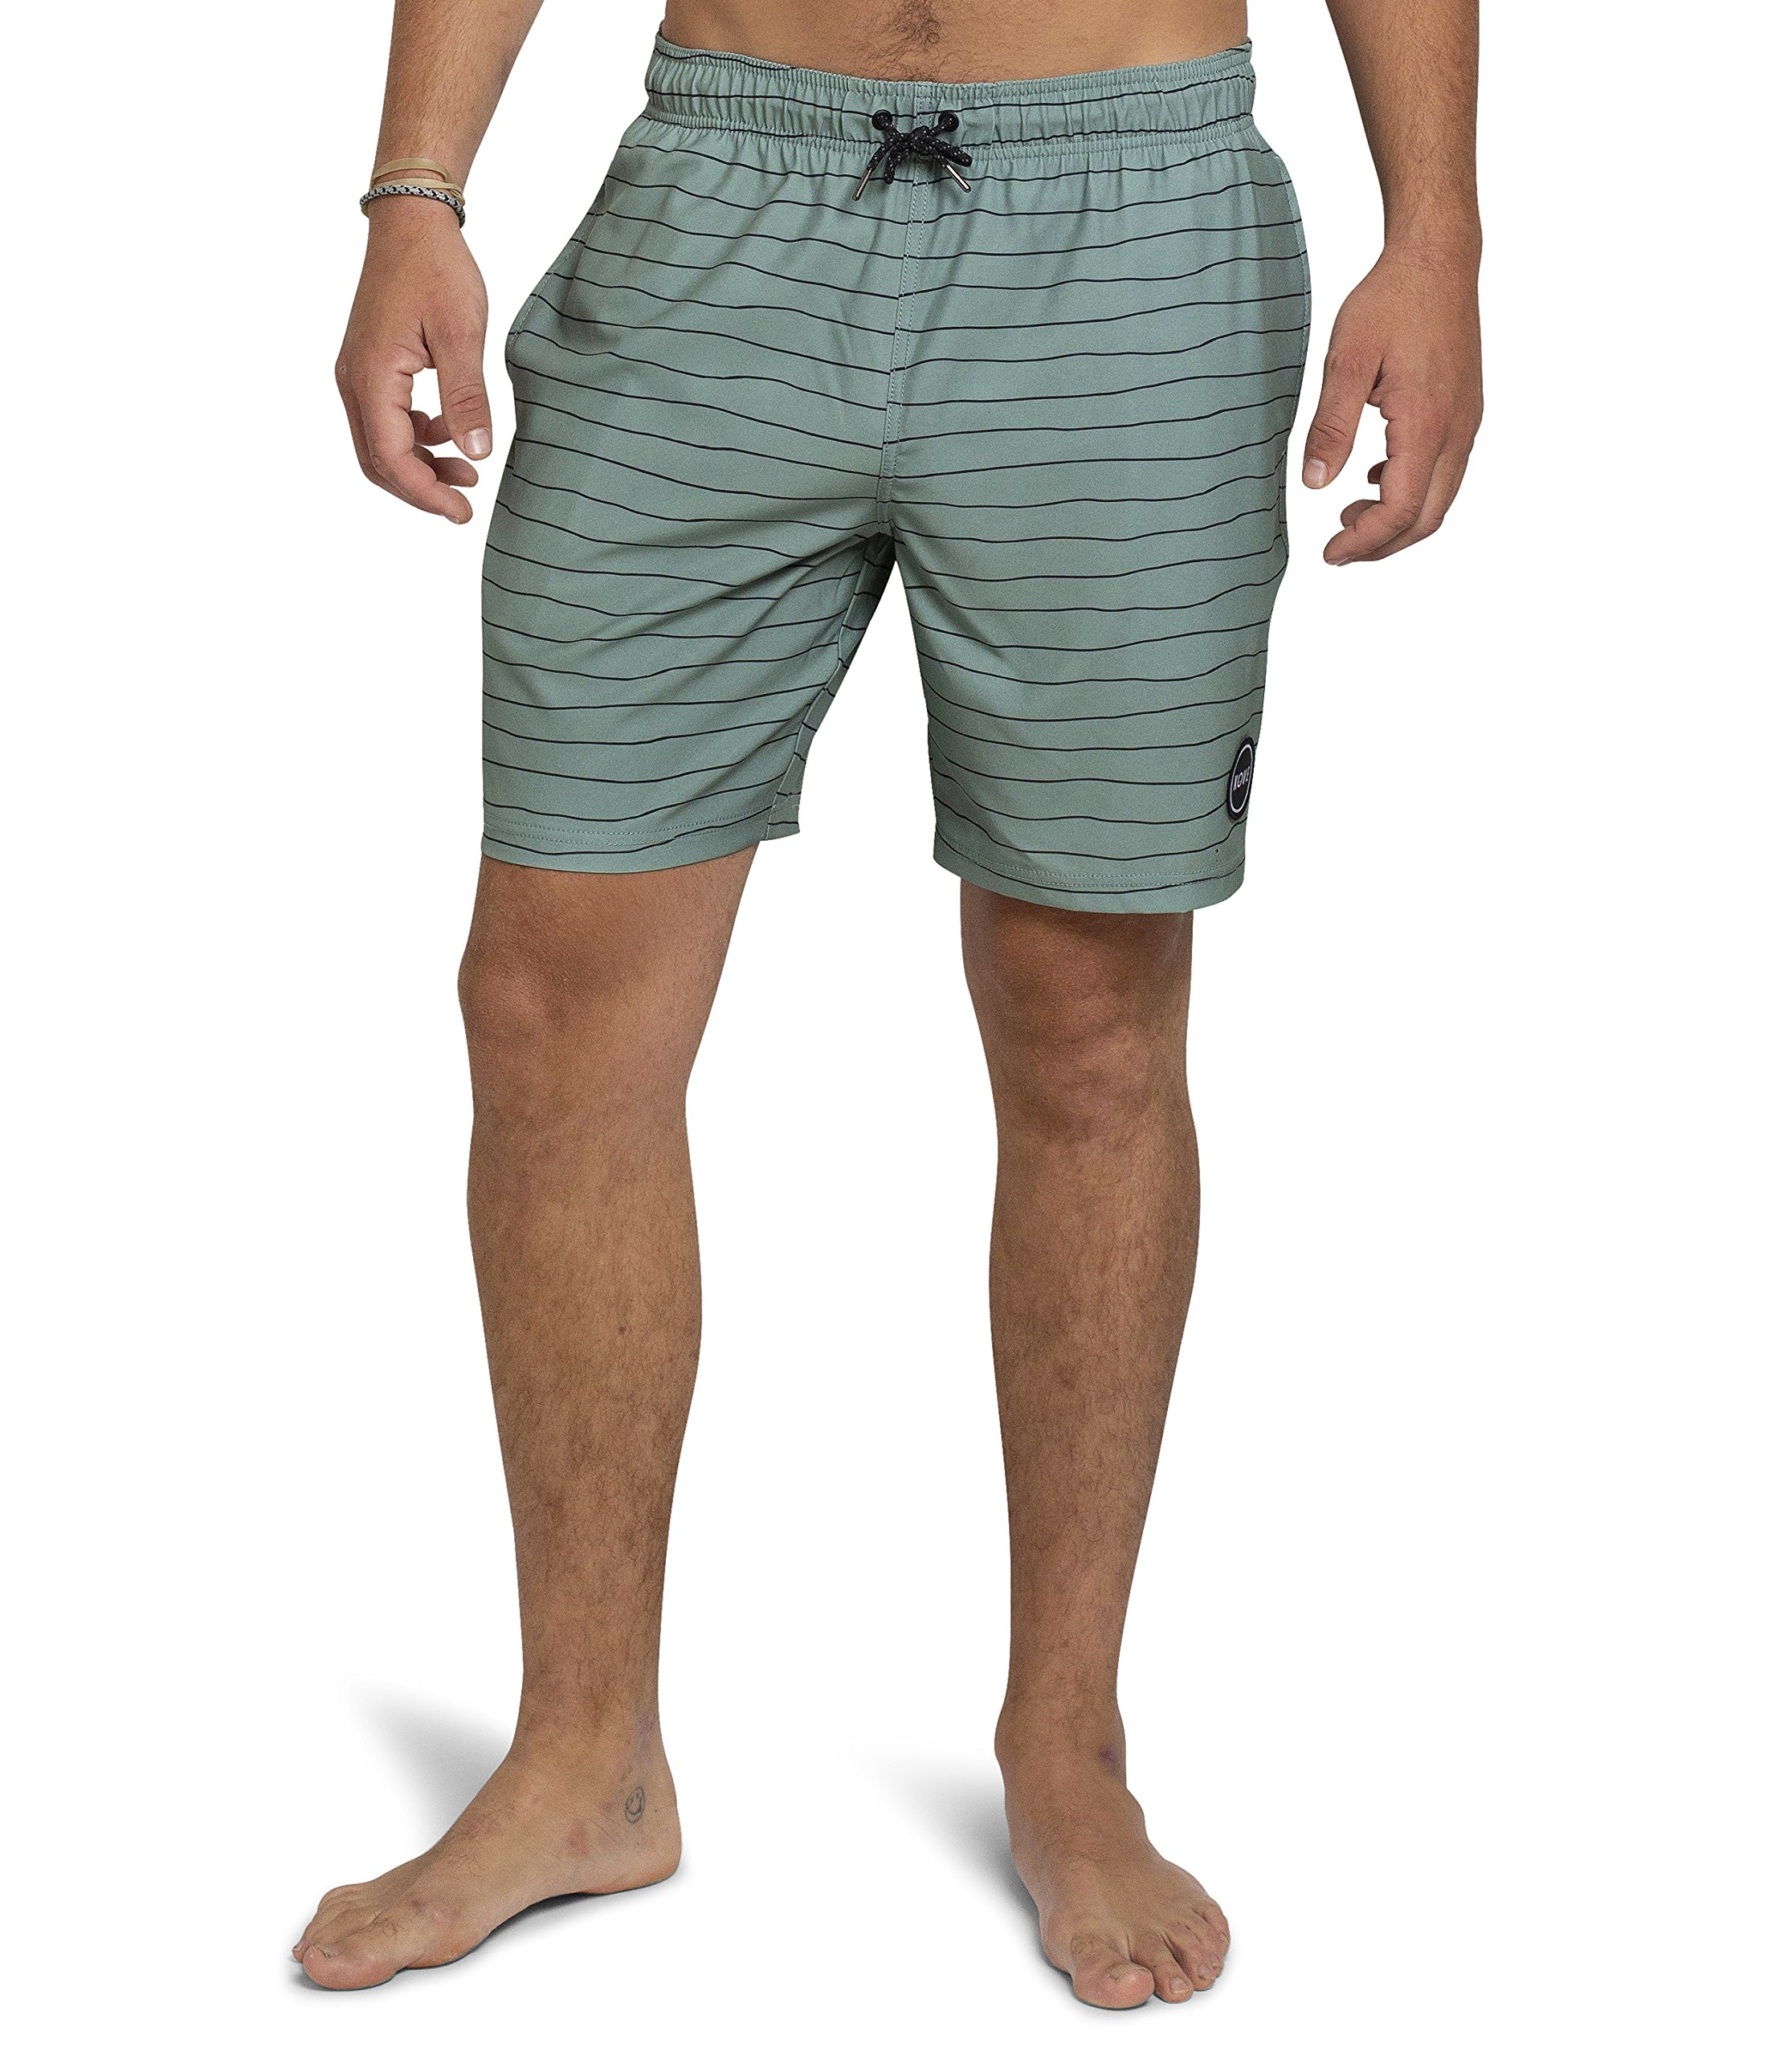 Kove Nomad Swim Trunks Recylced Men's Quick Dry 4 Way Stretch 18'' Swimsuit Large Sage Green